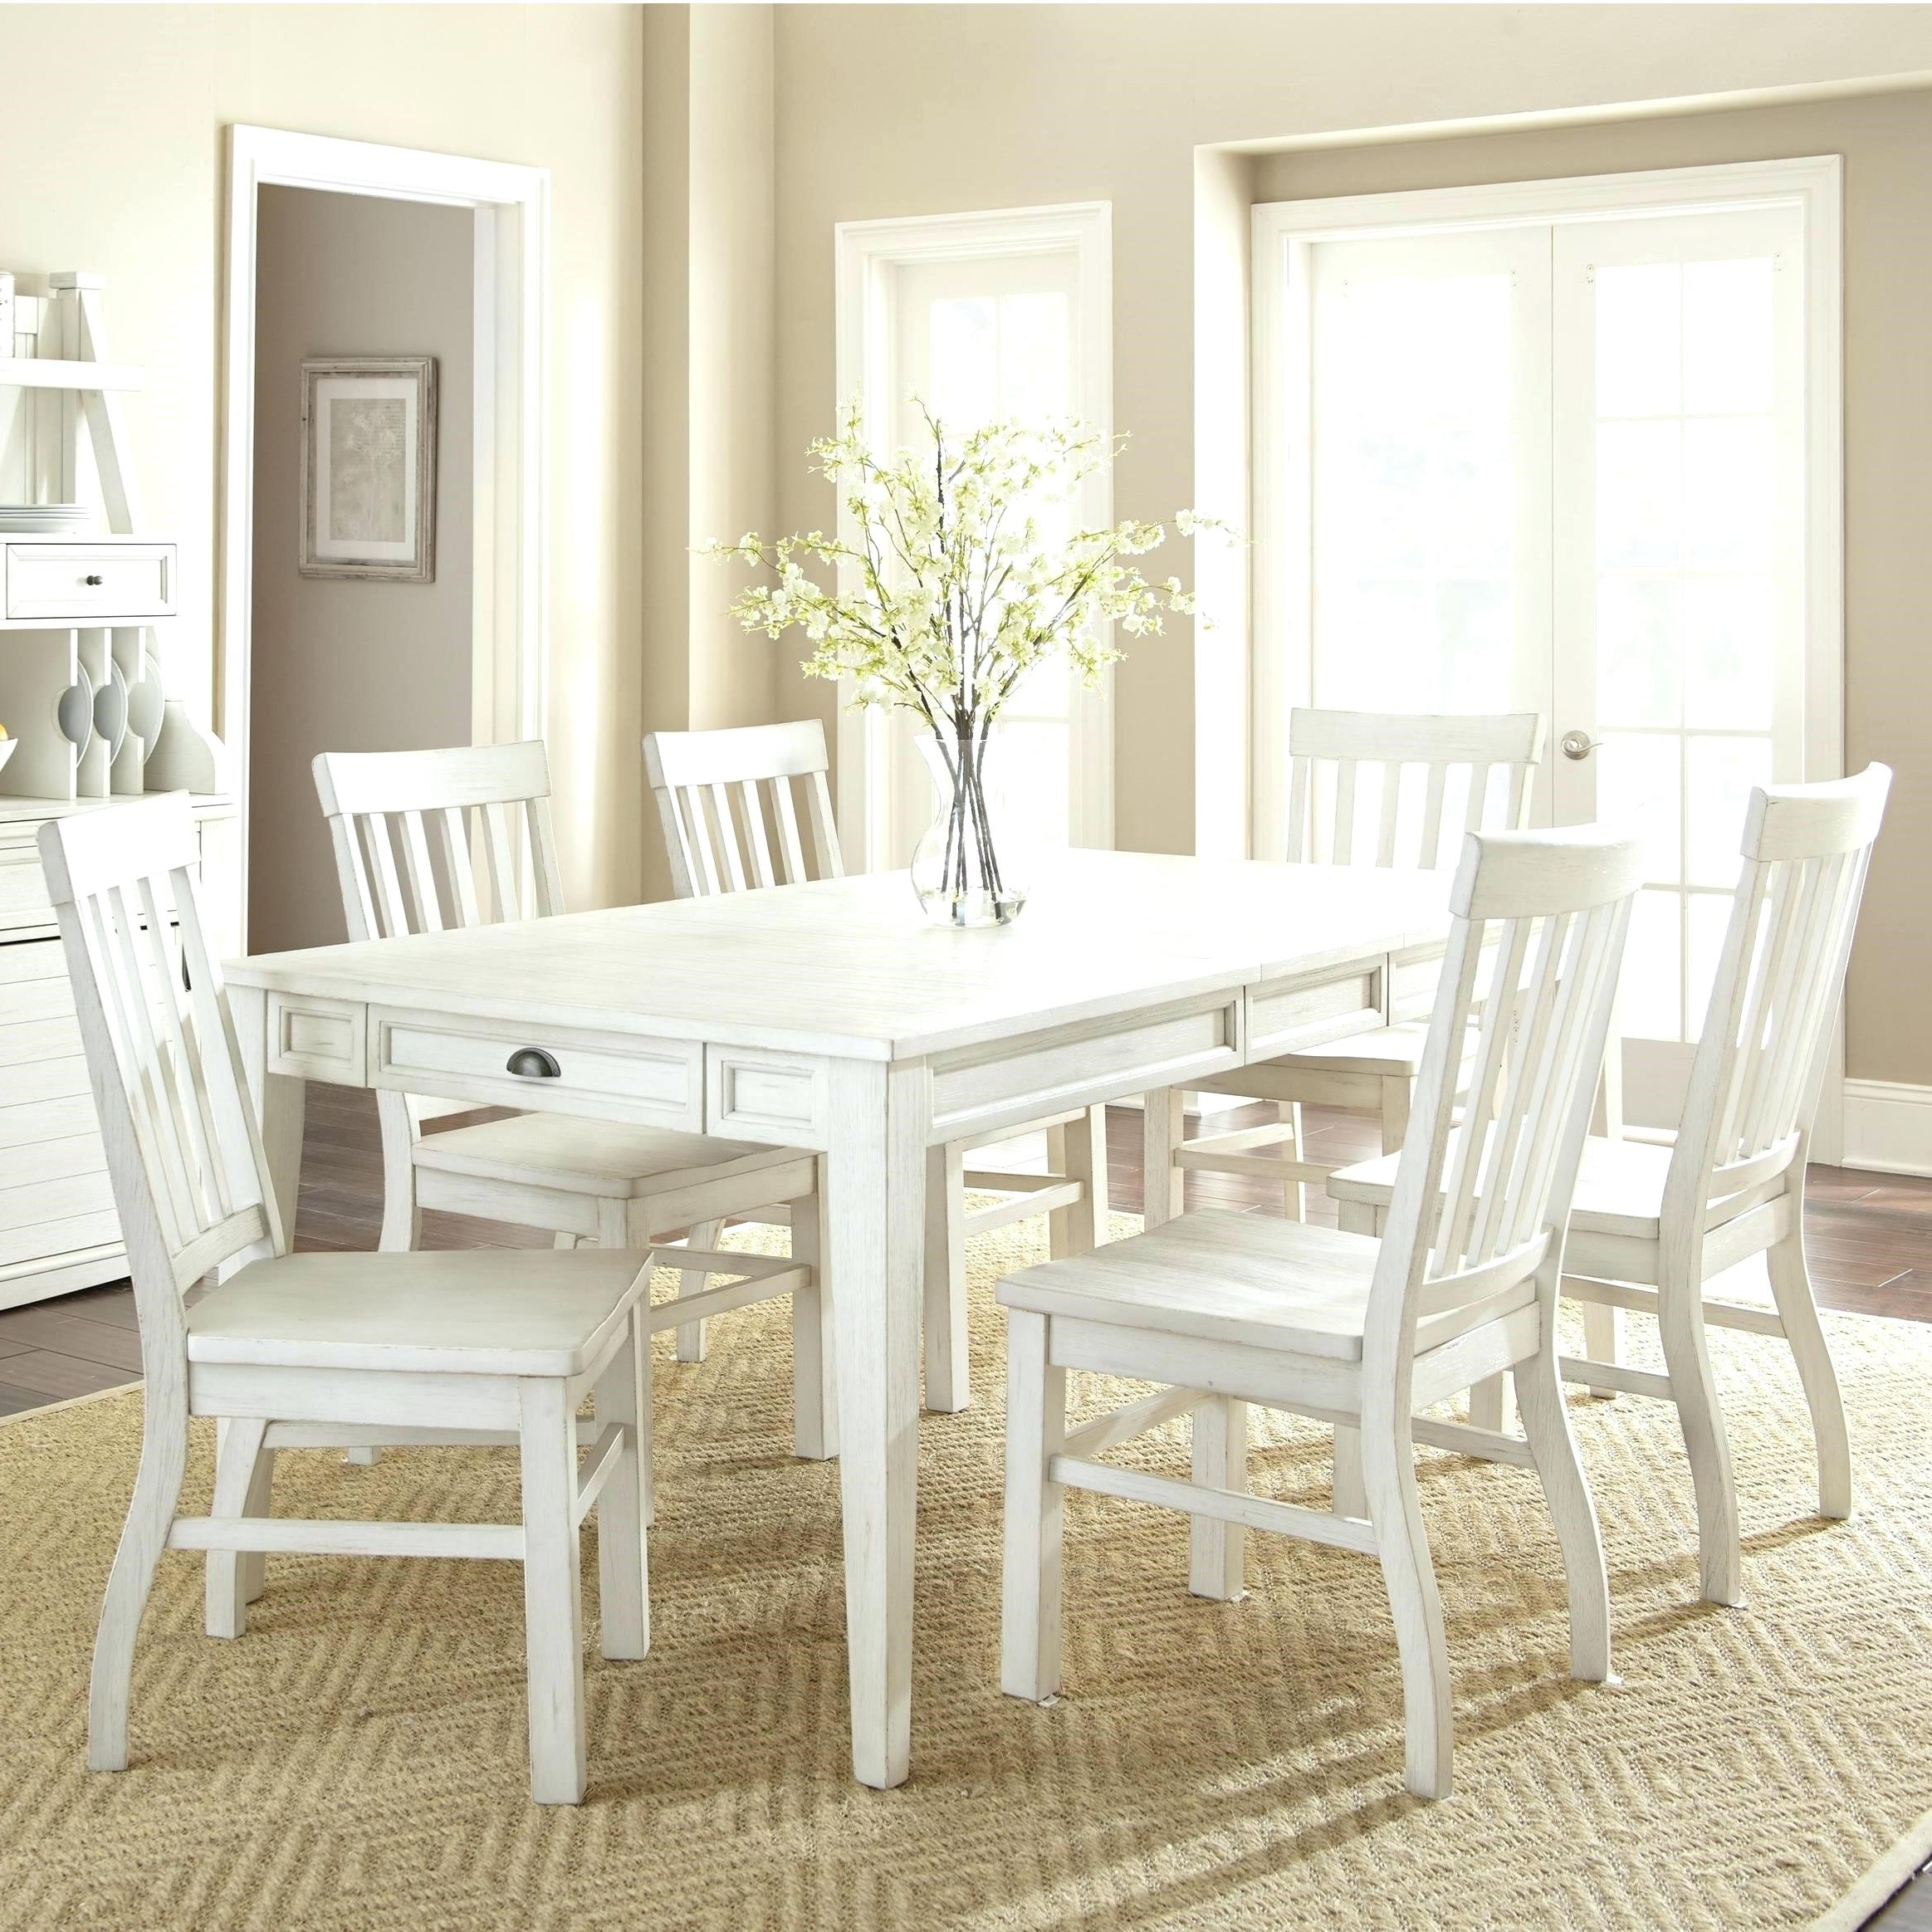 Well Liked 7 Piece Dining Set Under 400 – Positiveimpact (View 9 of 25)